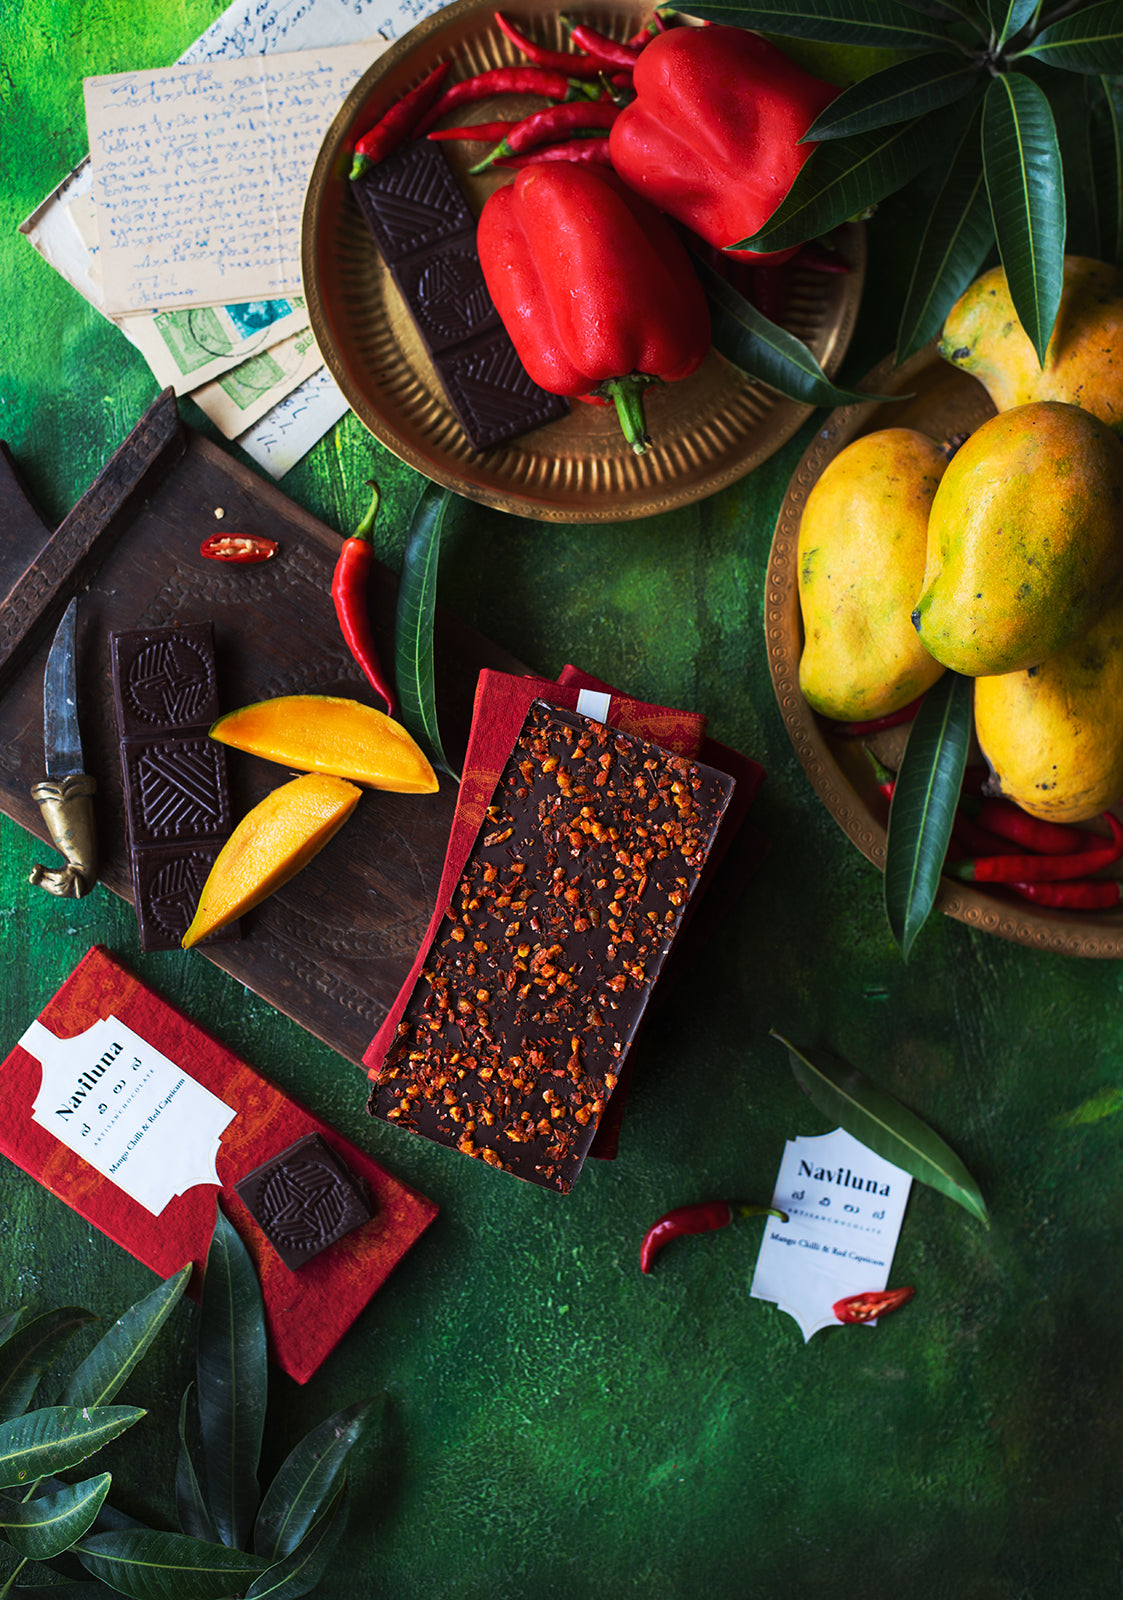 NAVILUNA Mango, Red Capsicum & Chili Chocolate Bar